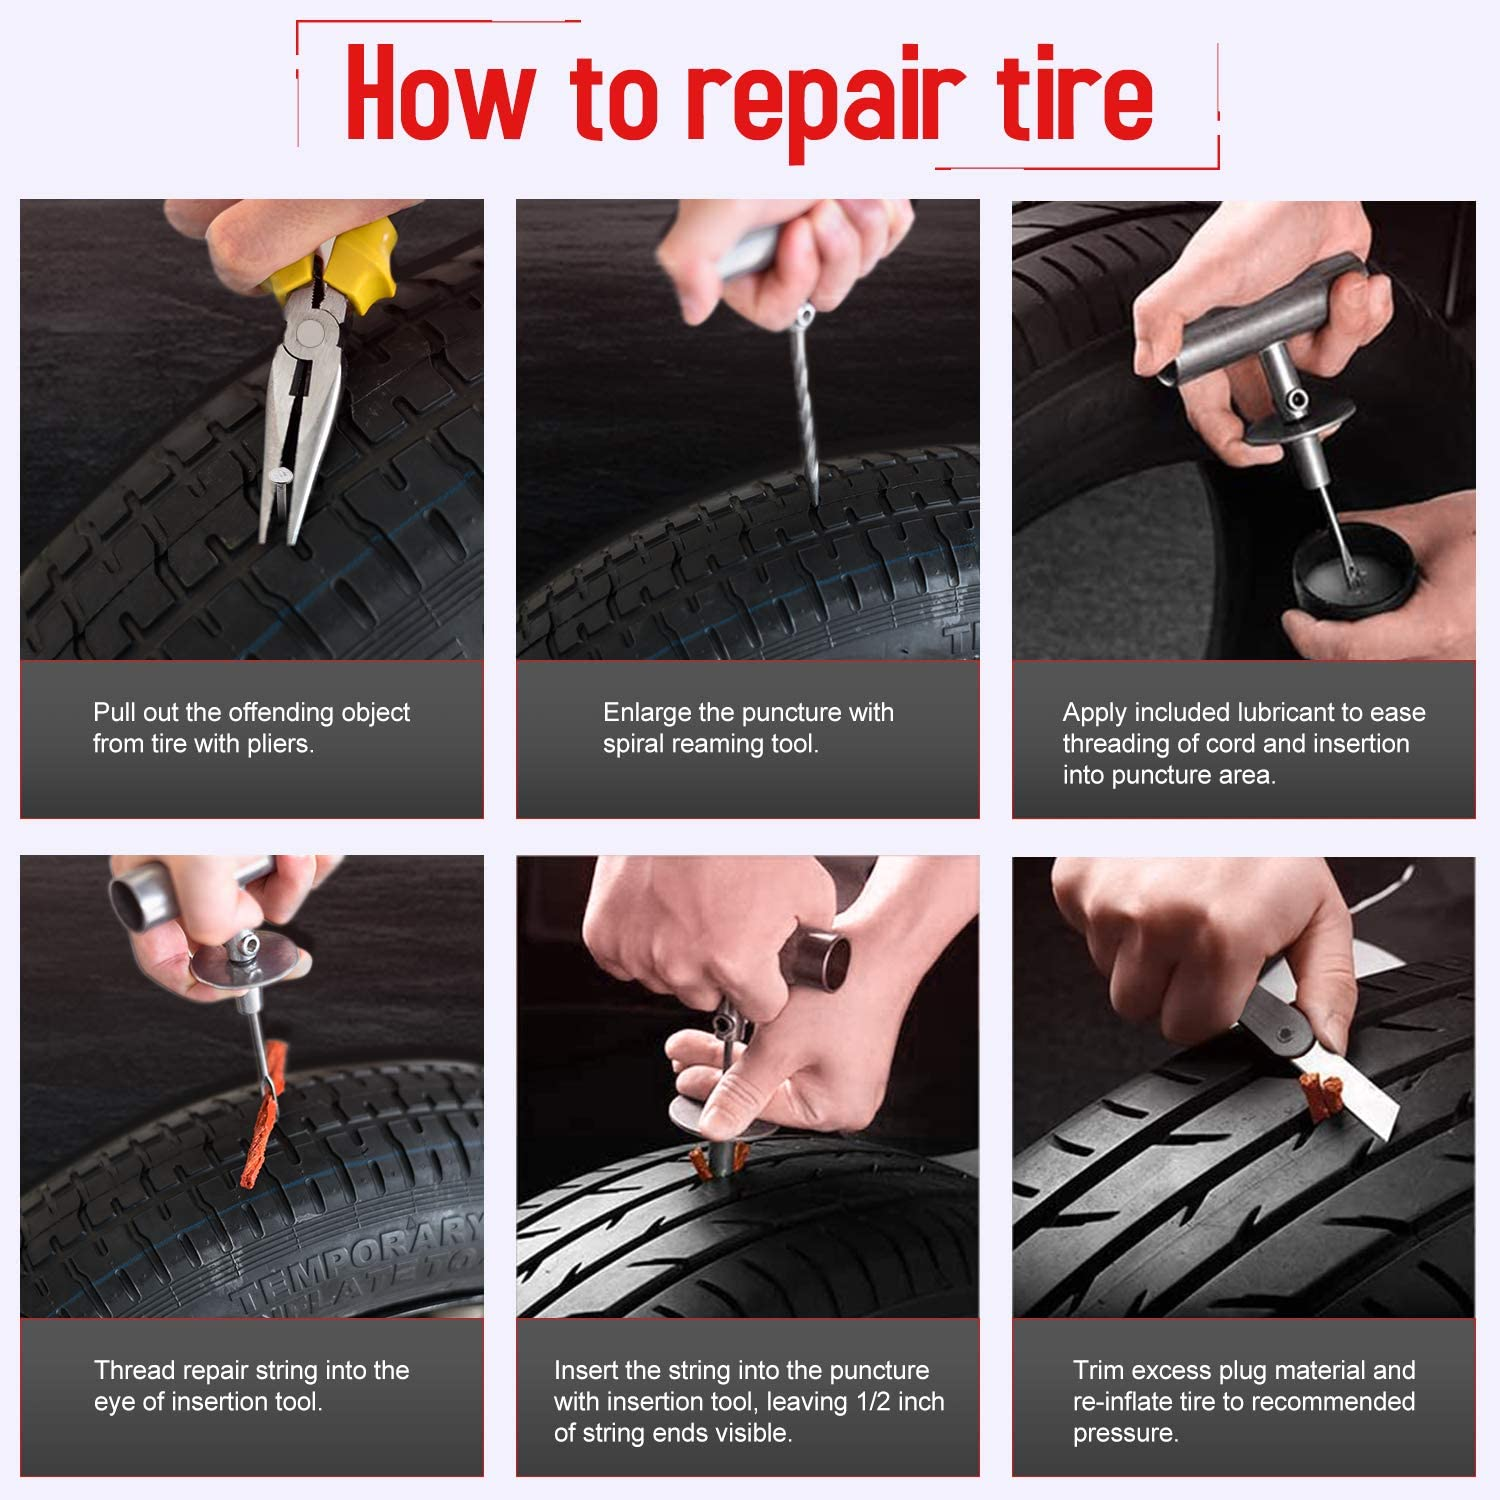 GSSUSA Universal Tire Repair Kits, 78pcs Heavy Duty Tire Tool for Flat Tire Puncture Repair Kit, Flat Tire Plug Kit for Car, Vehicle, Truck, Motorcycle, ATV,RV, Jeep, Tractor, Trailer